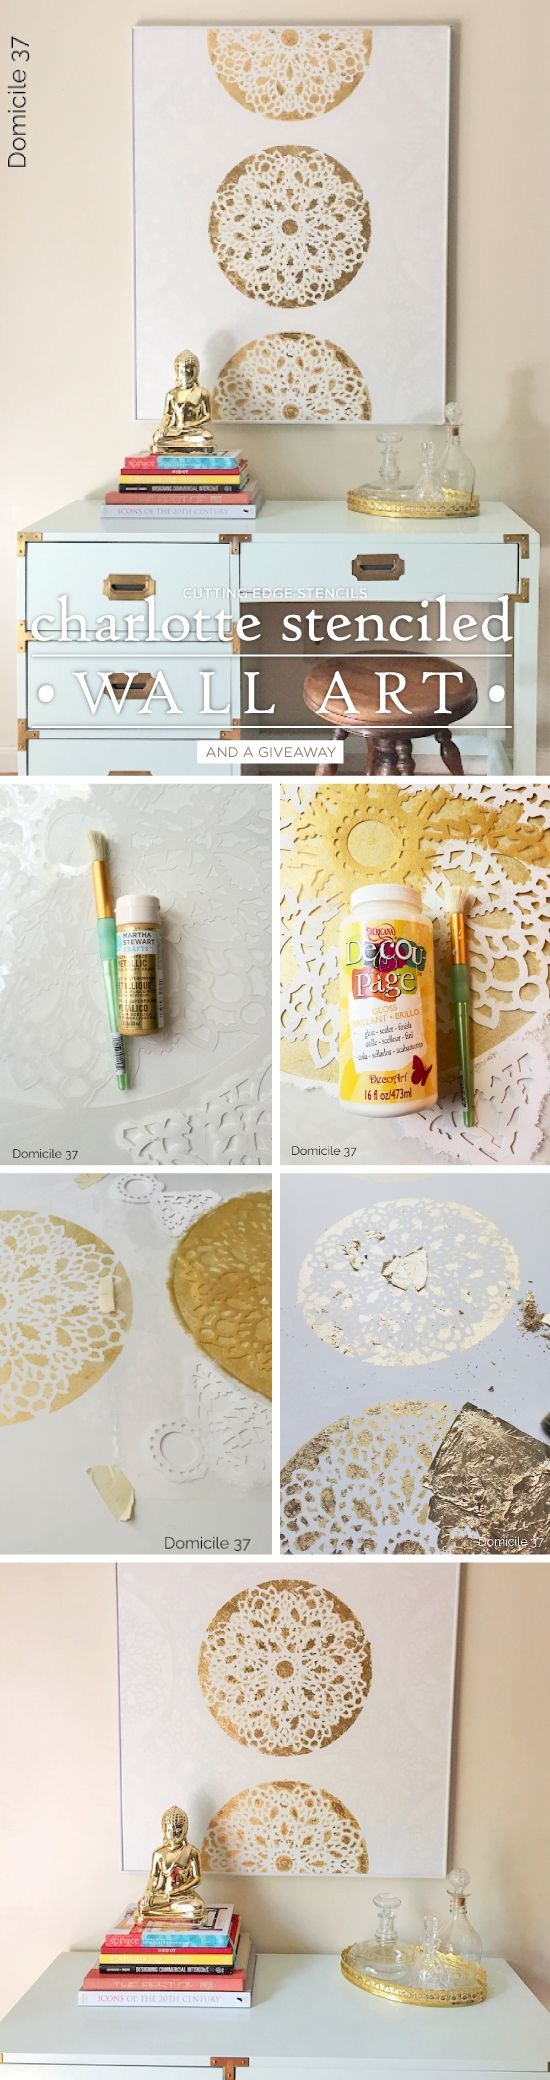 crushin art cutting edge stencil review and giveaway gold bedroomdiy bedroomstencil wall - Diy Wall Decor For Bedroom